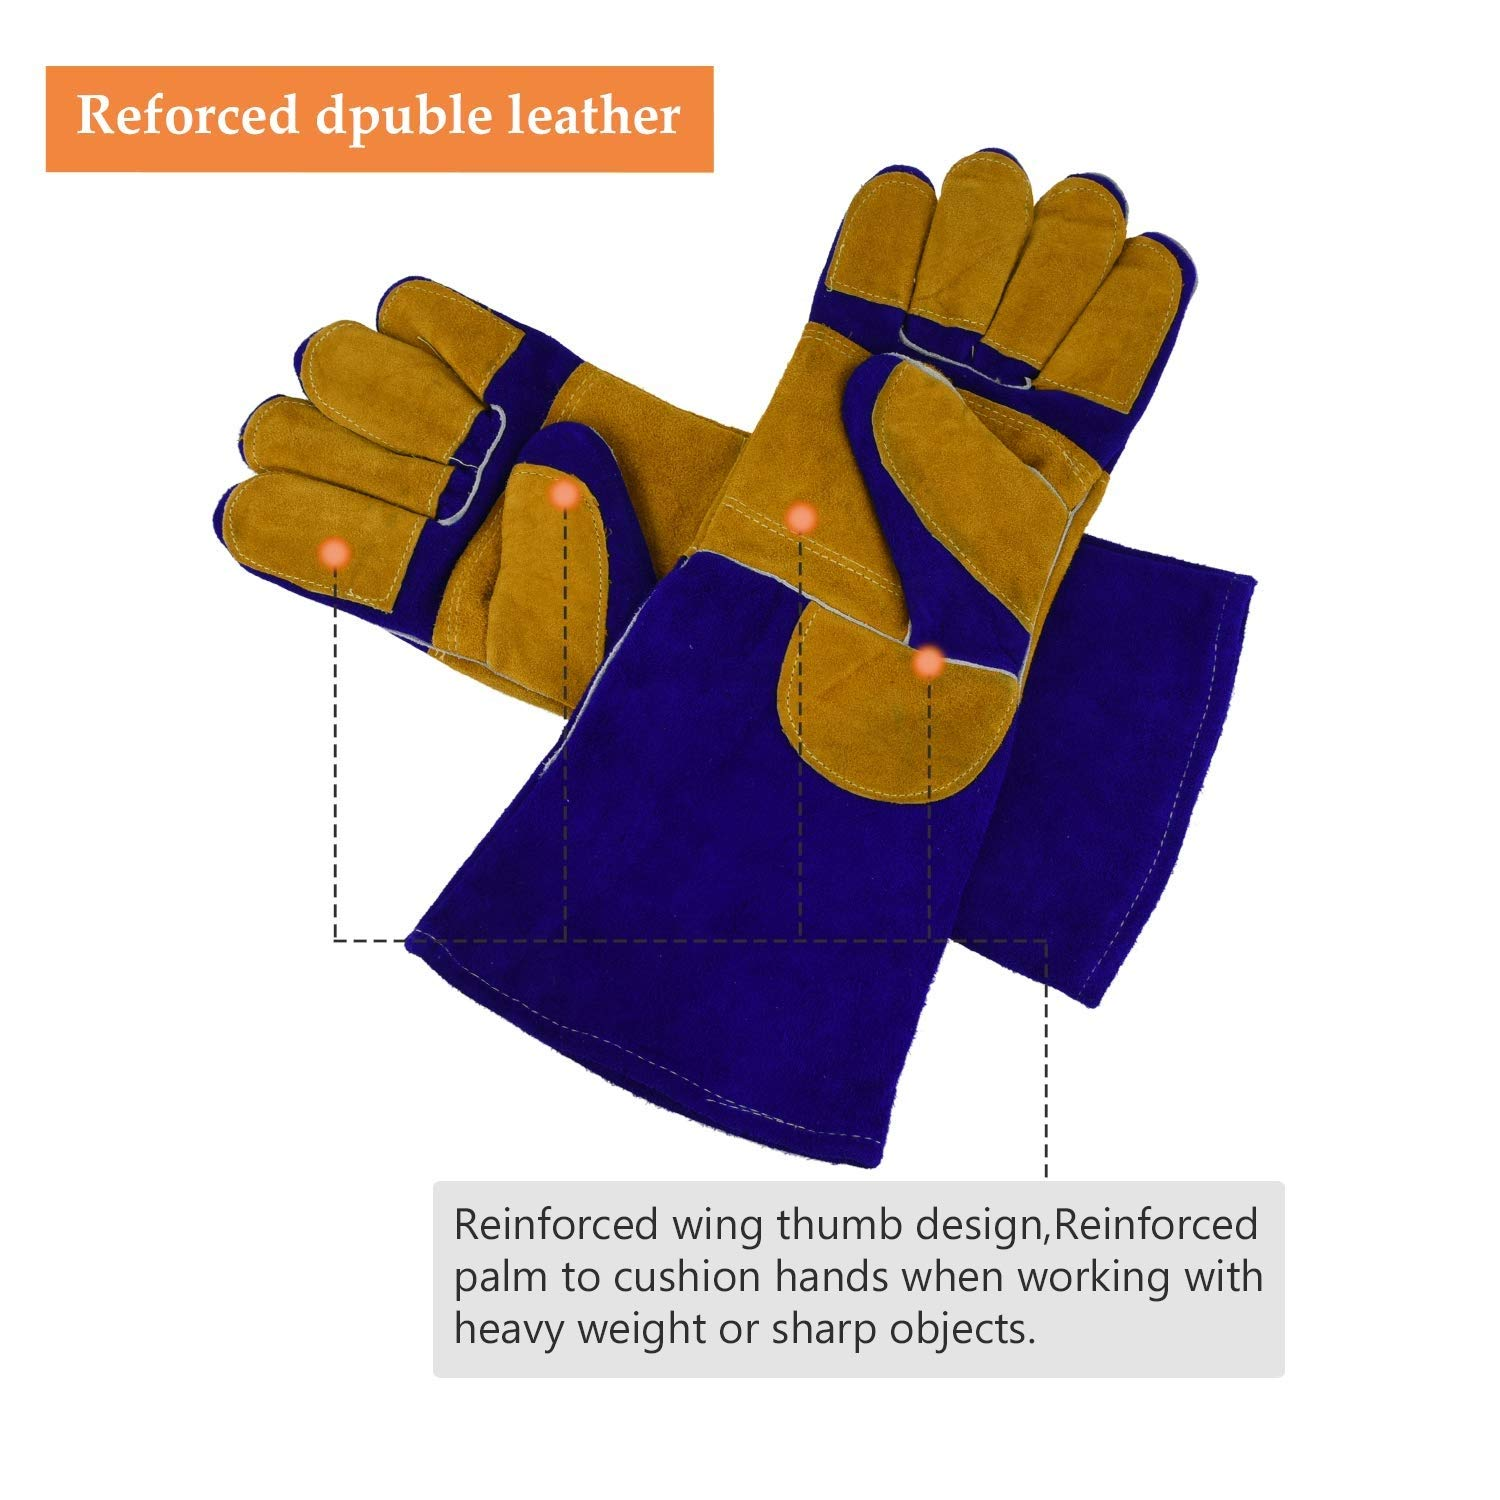 AINIYF Heavy Duty Heat Resistant & Flame Retardant Welding & BBQ Gloves, Premium Cowhide Leather, Long 15.7 Inch Forearm Protection, Blue, Size Large by AINIYF (Image #2)